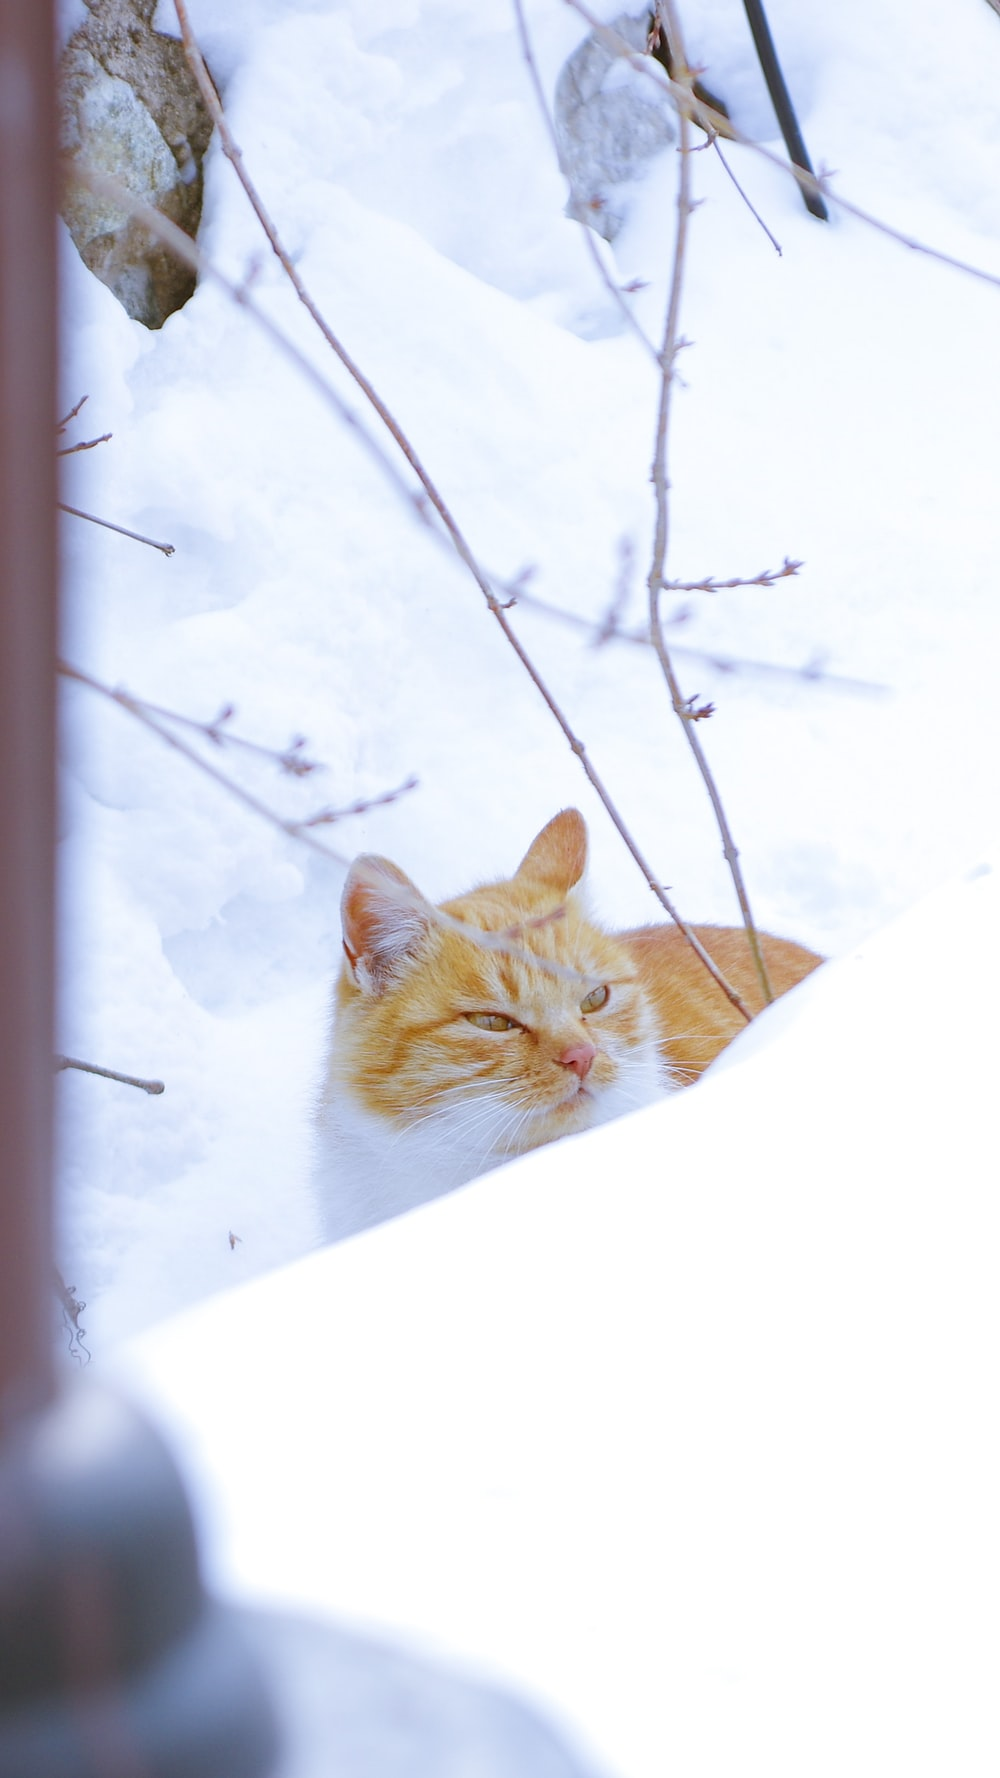 orange tabby cat on snow covered ground during daytime